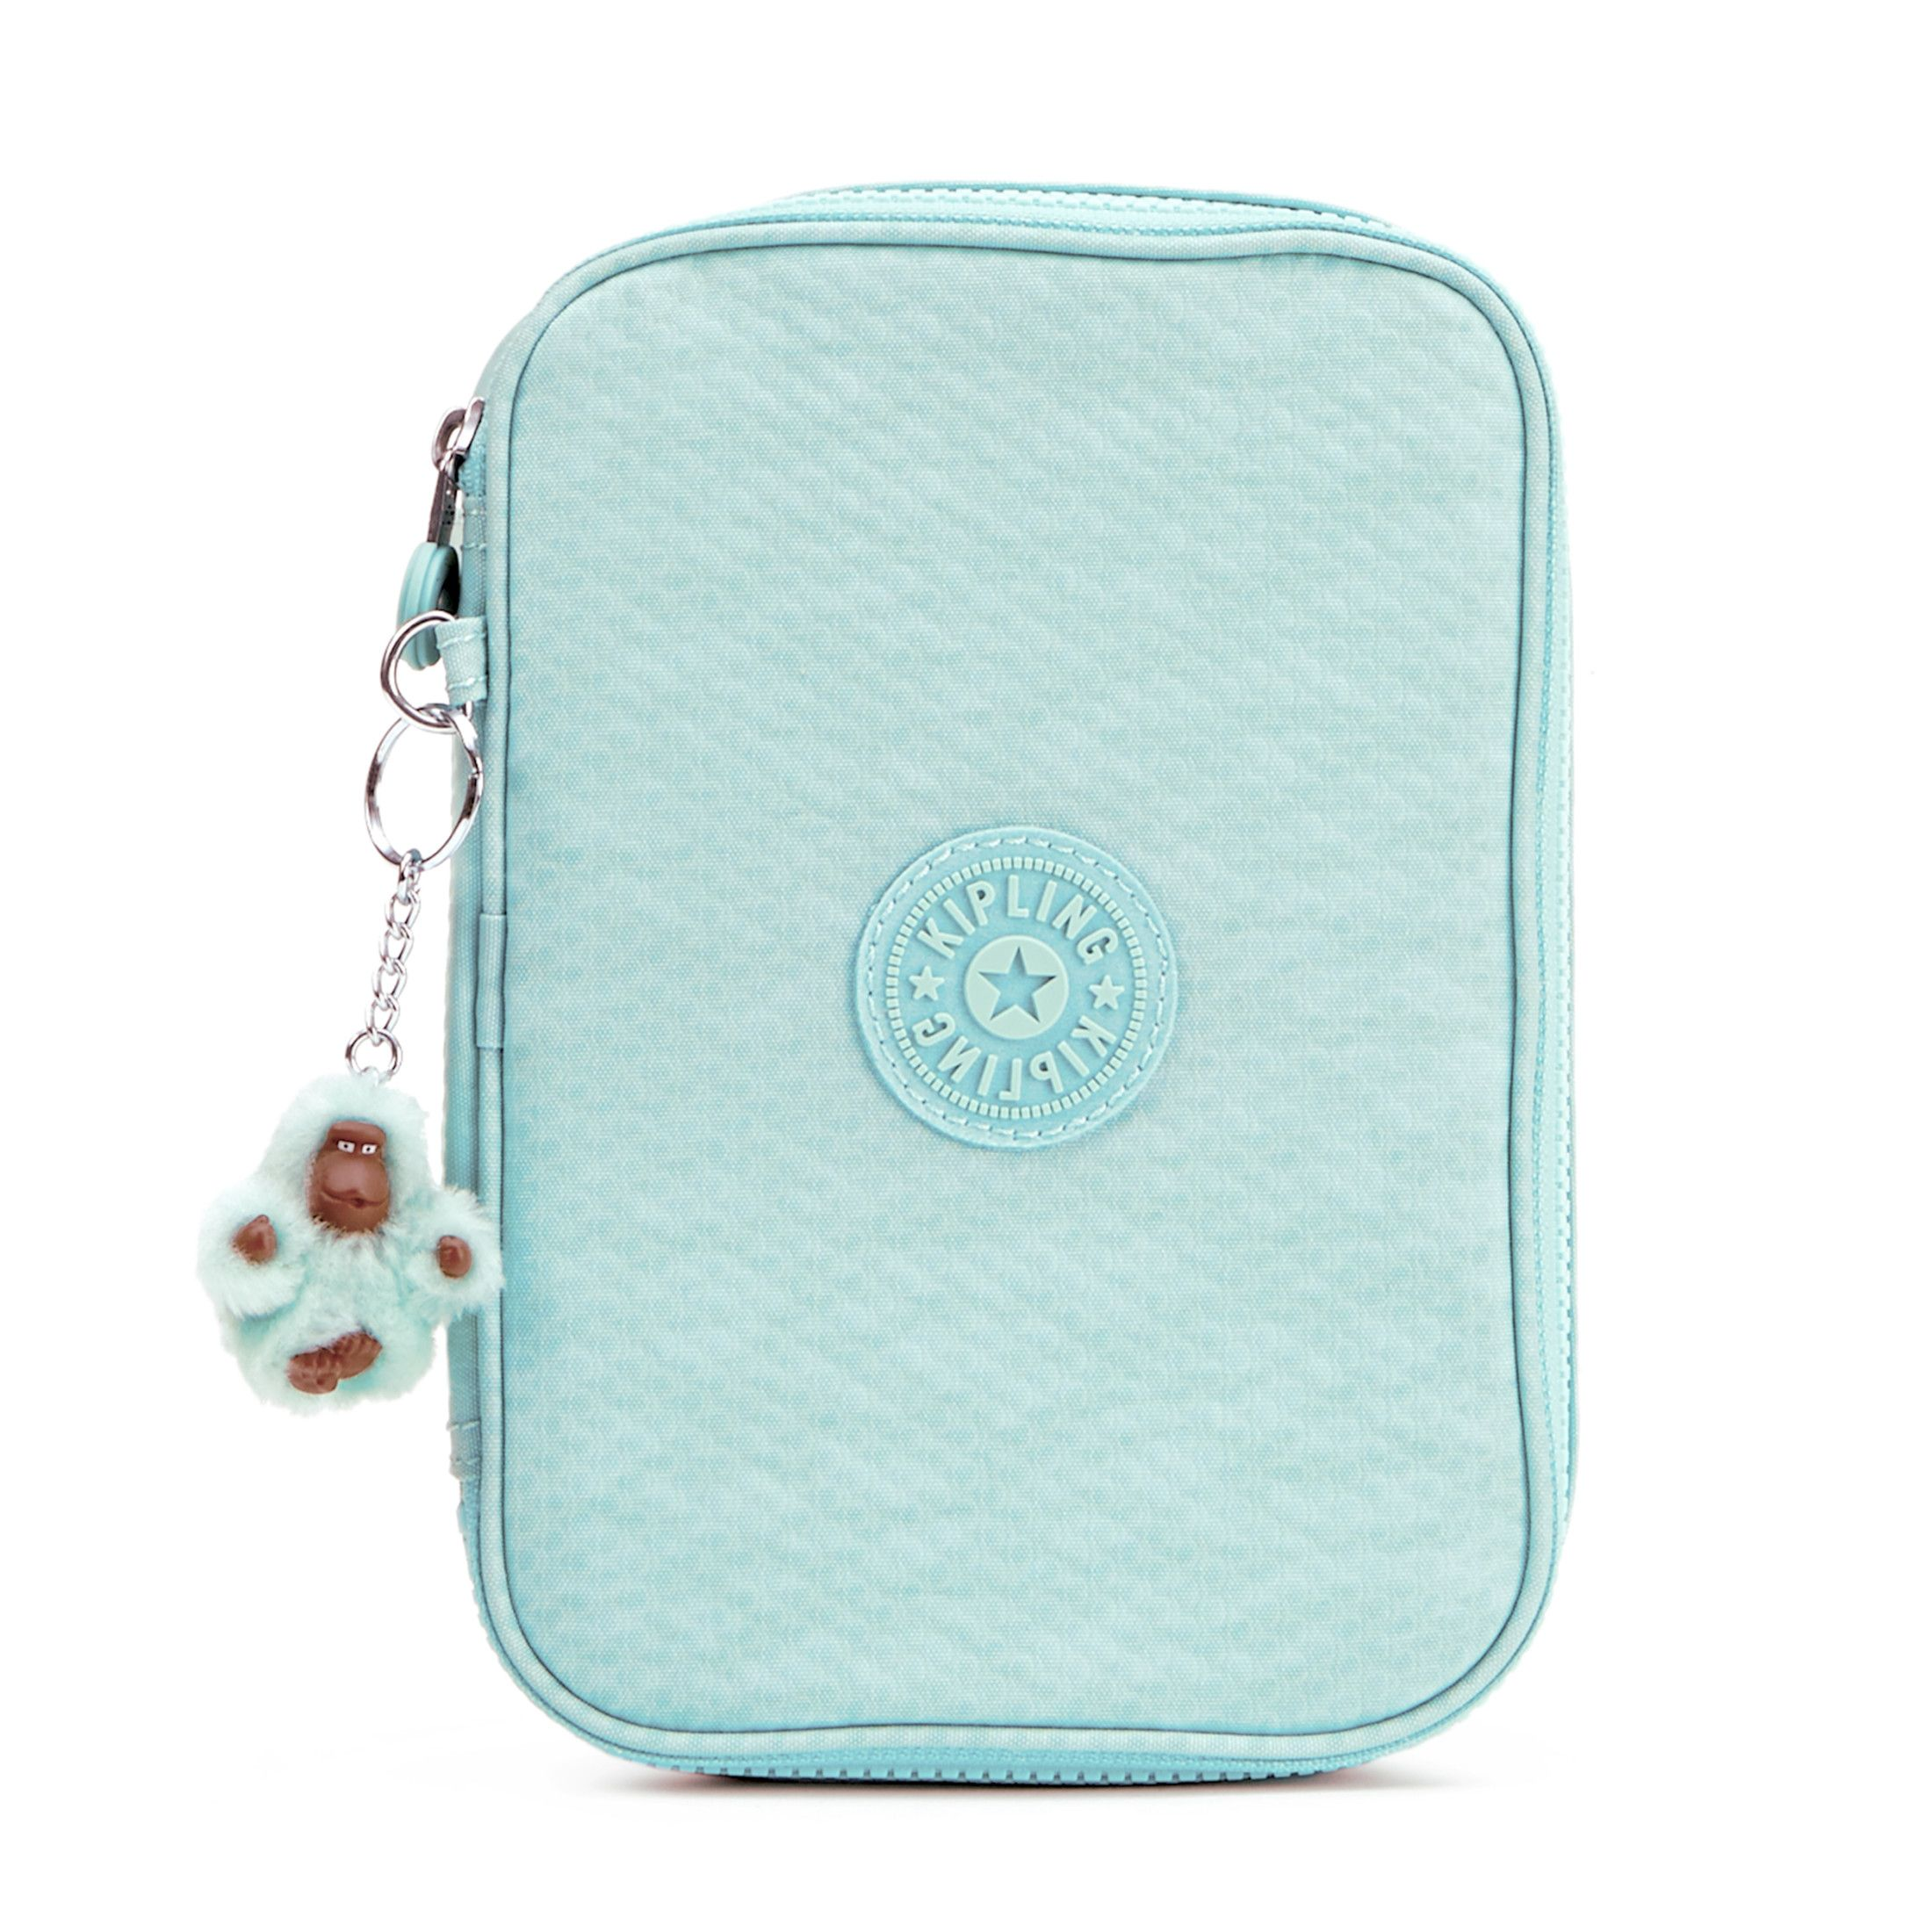 b1f177789 Calling all artists, students and anyone who loves color! This lightweight  case has room